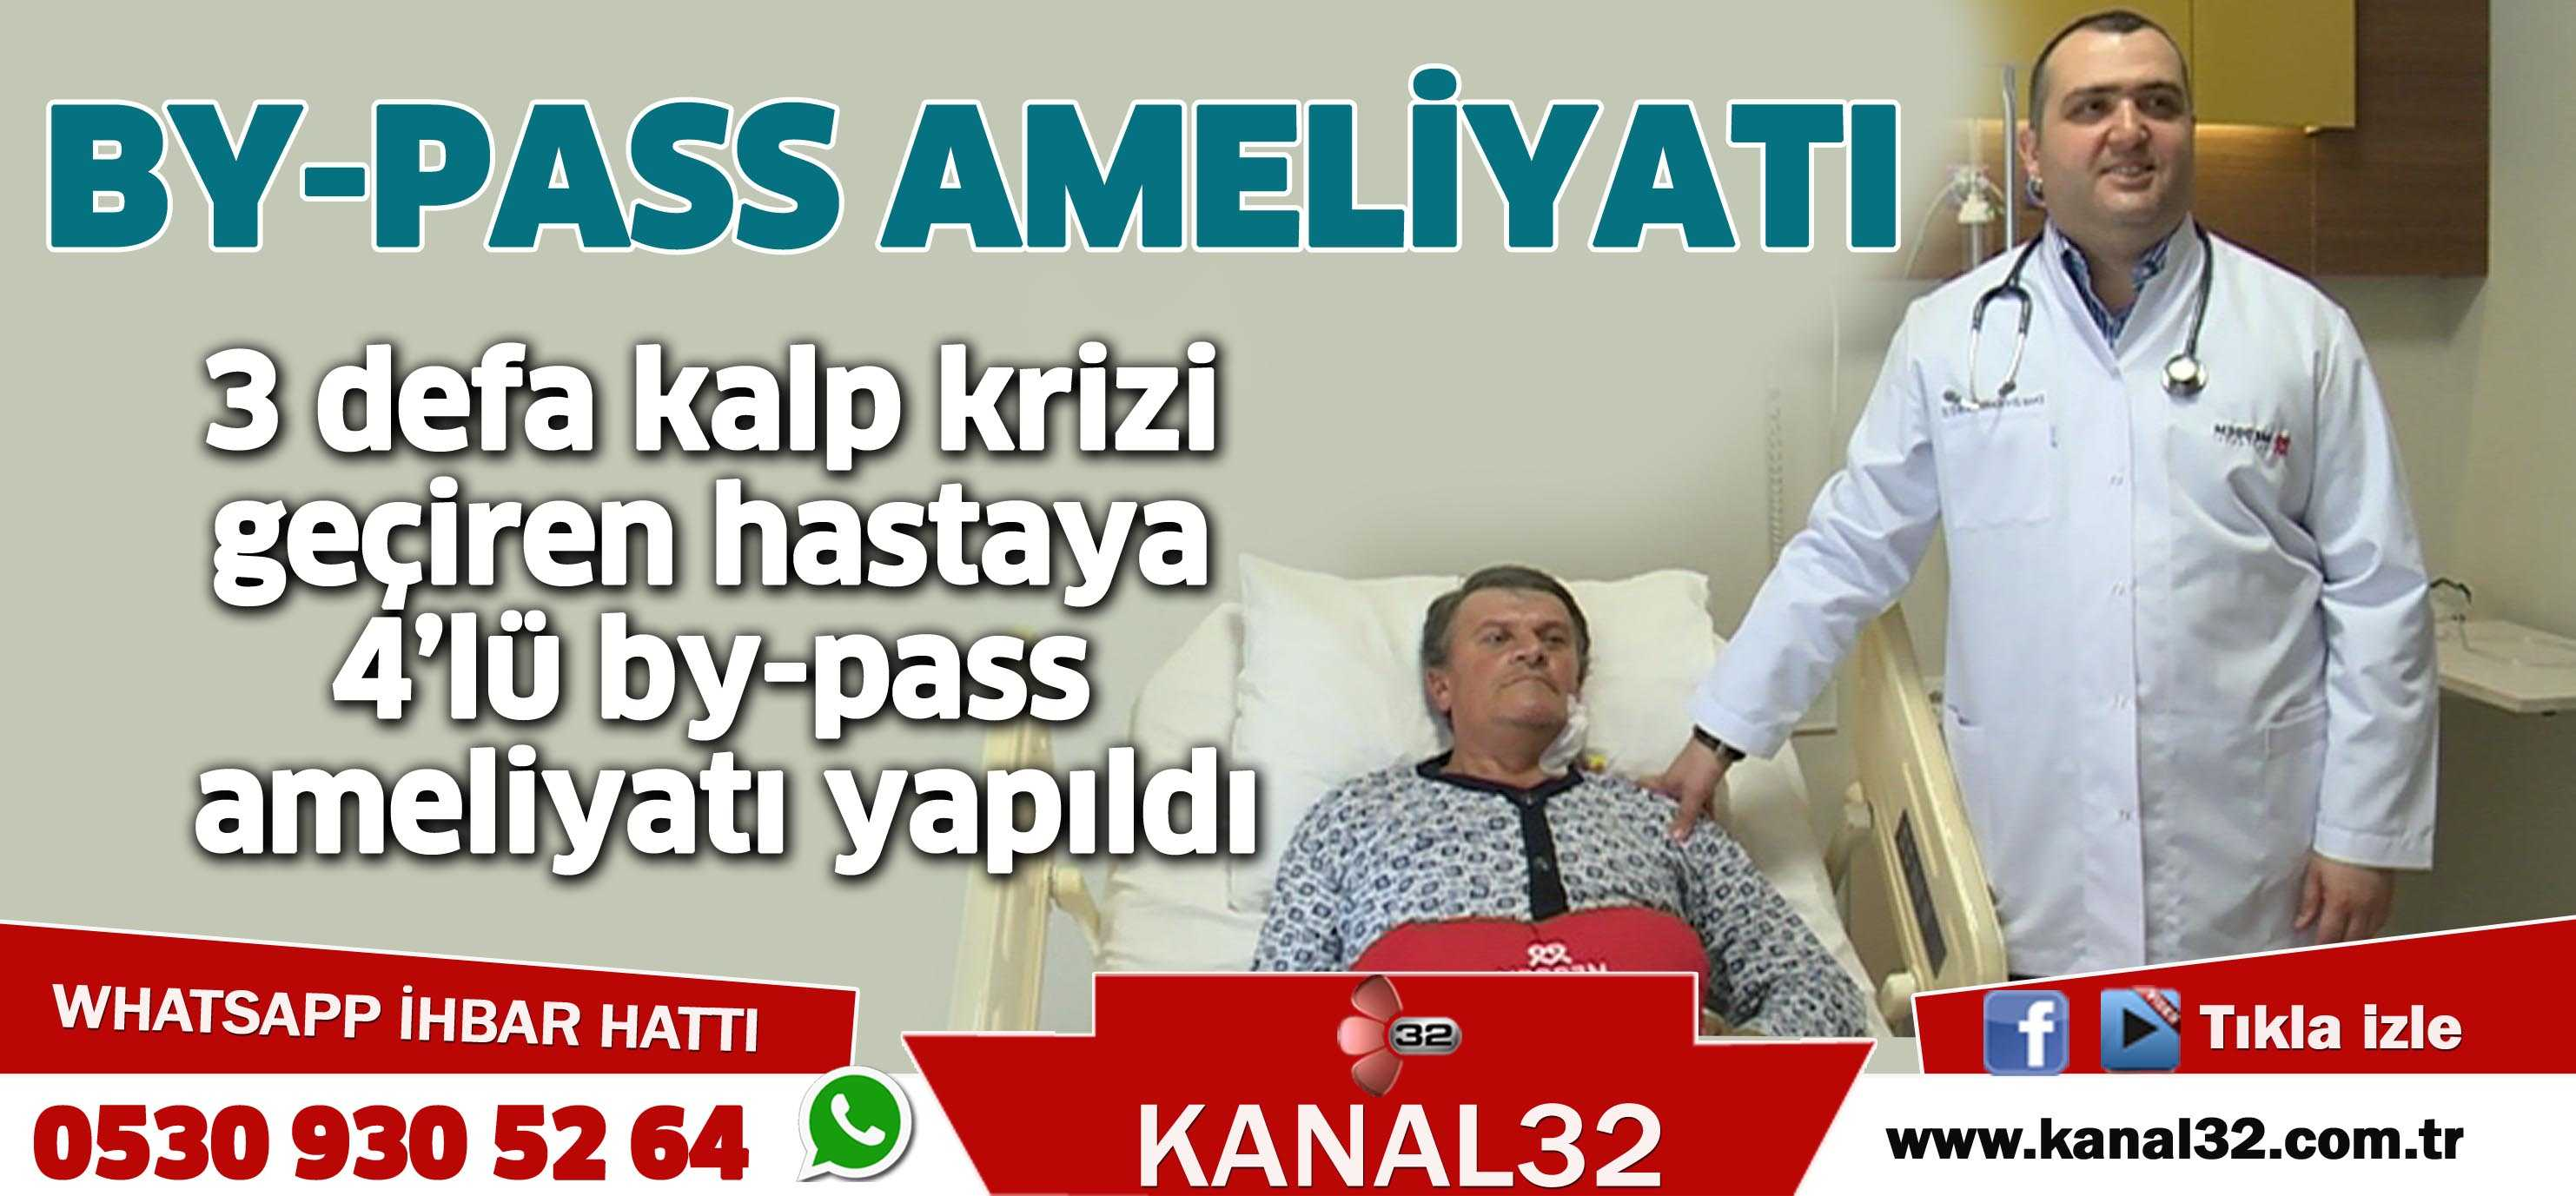 BY-PASS AMELİYATI